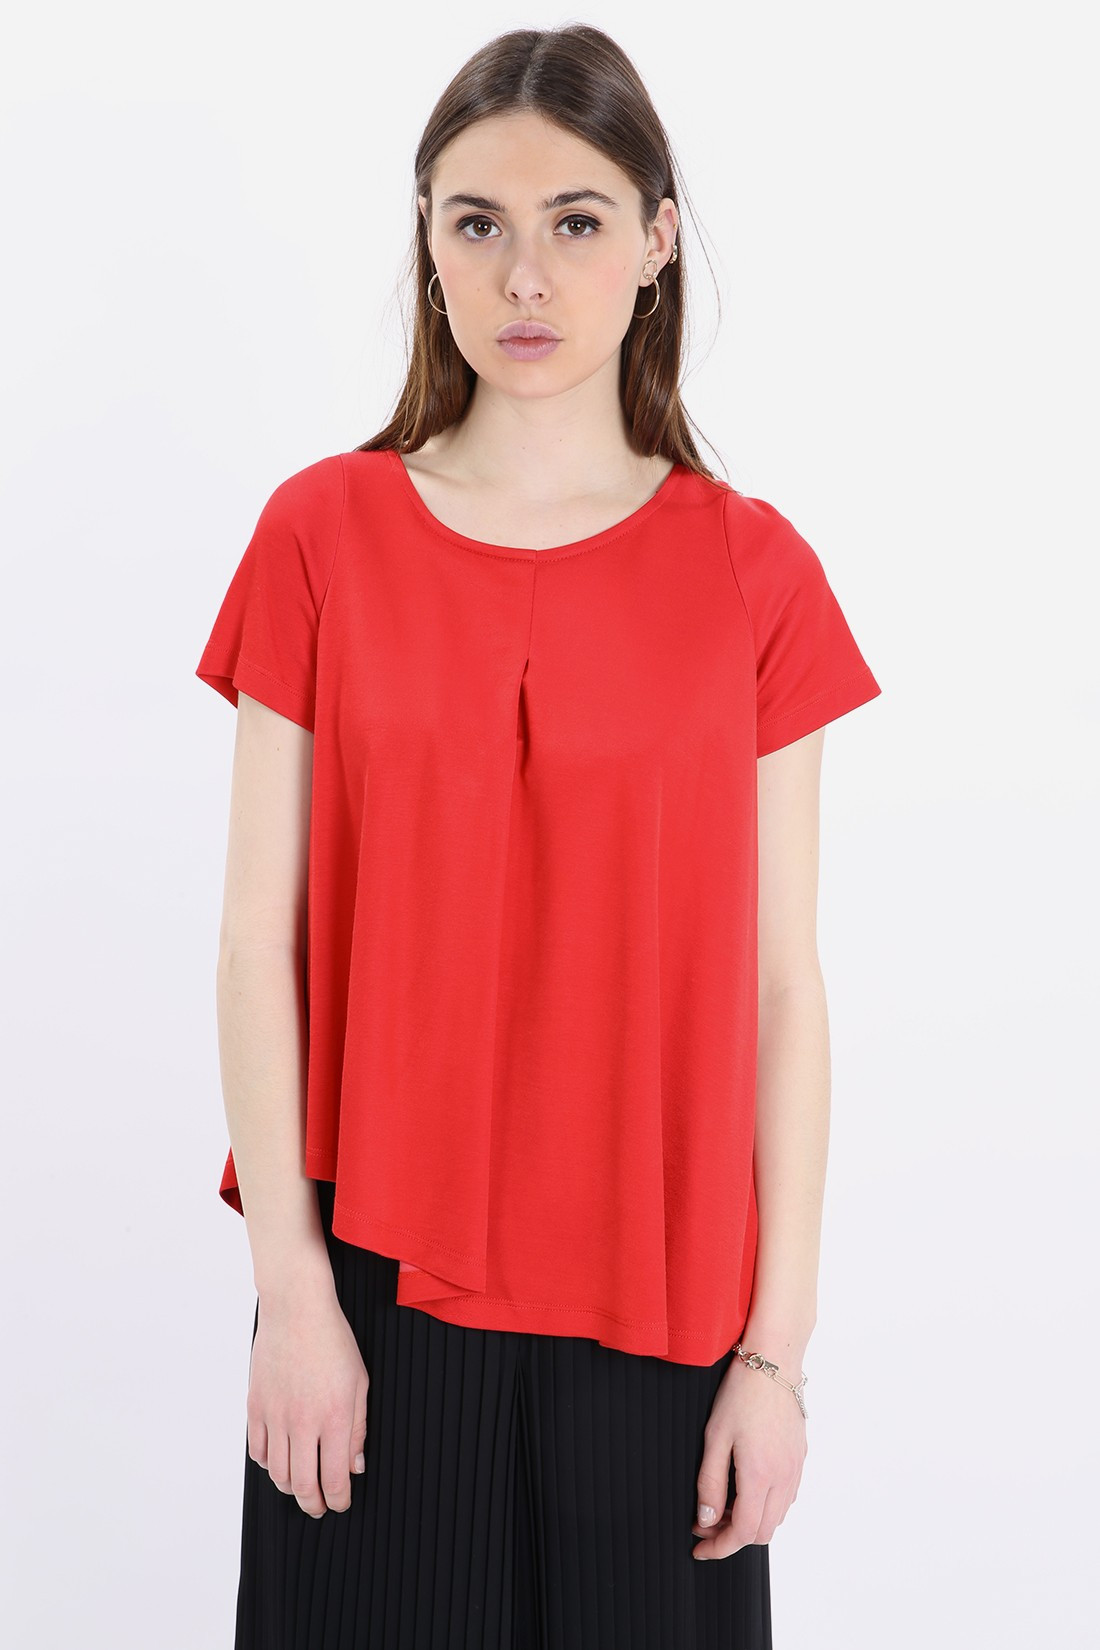 MM6 MAISON MARGIELA FOR WOMAN / Unbalanced red pleated top Red